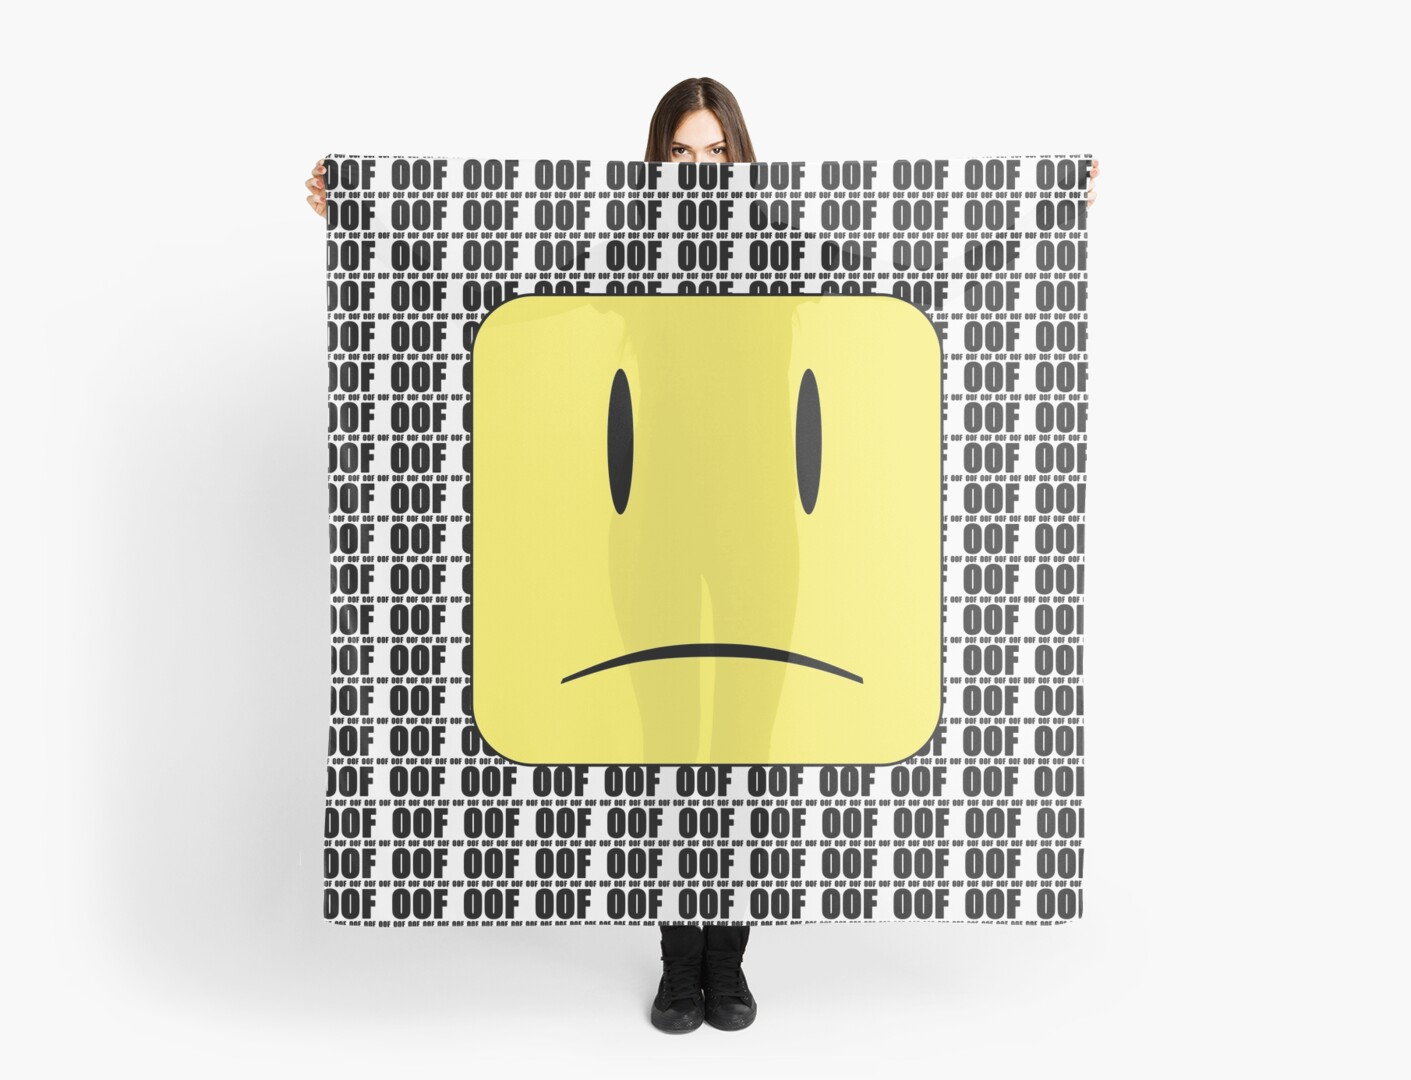 Oof X Infinity Scarf By Jenr8d Designs Redbubble